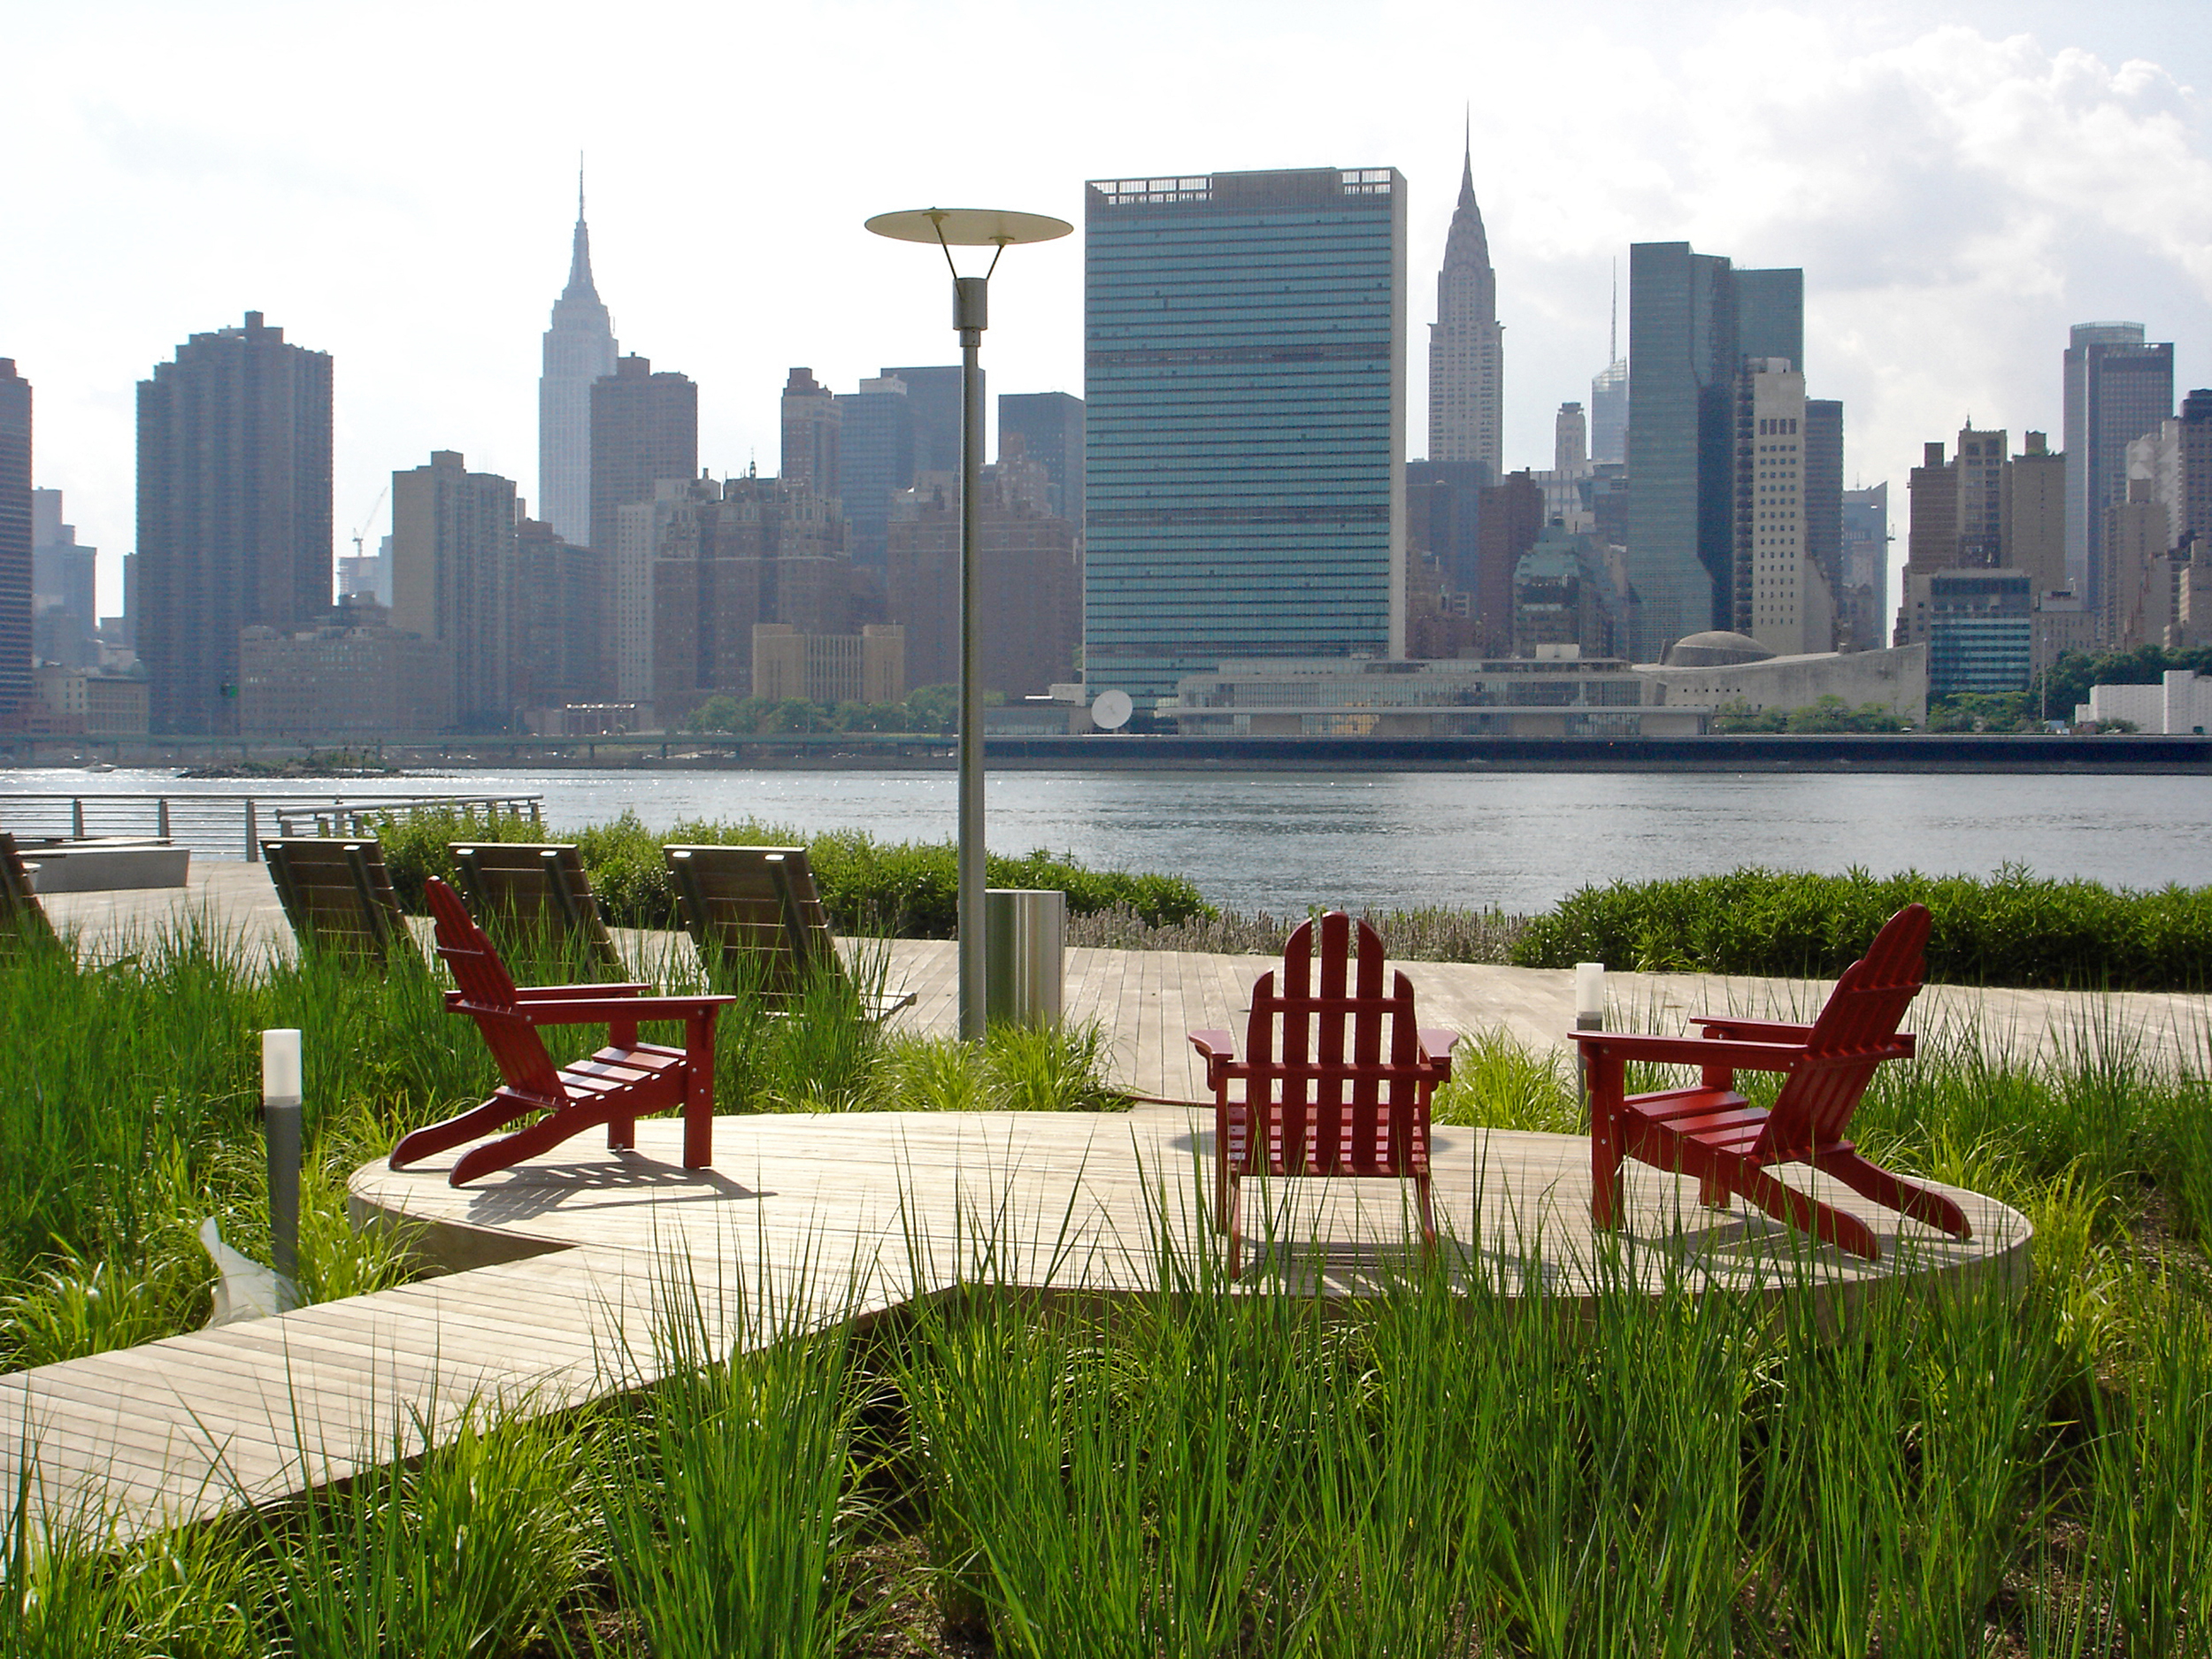 Cove Seating Area at Gantry Plaza State Park